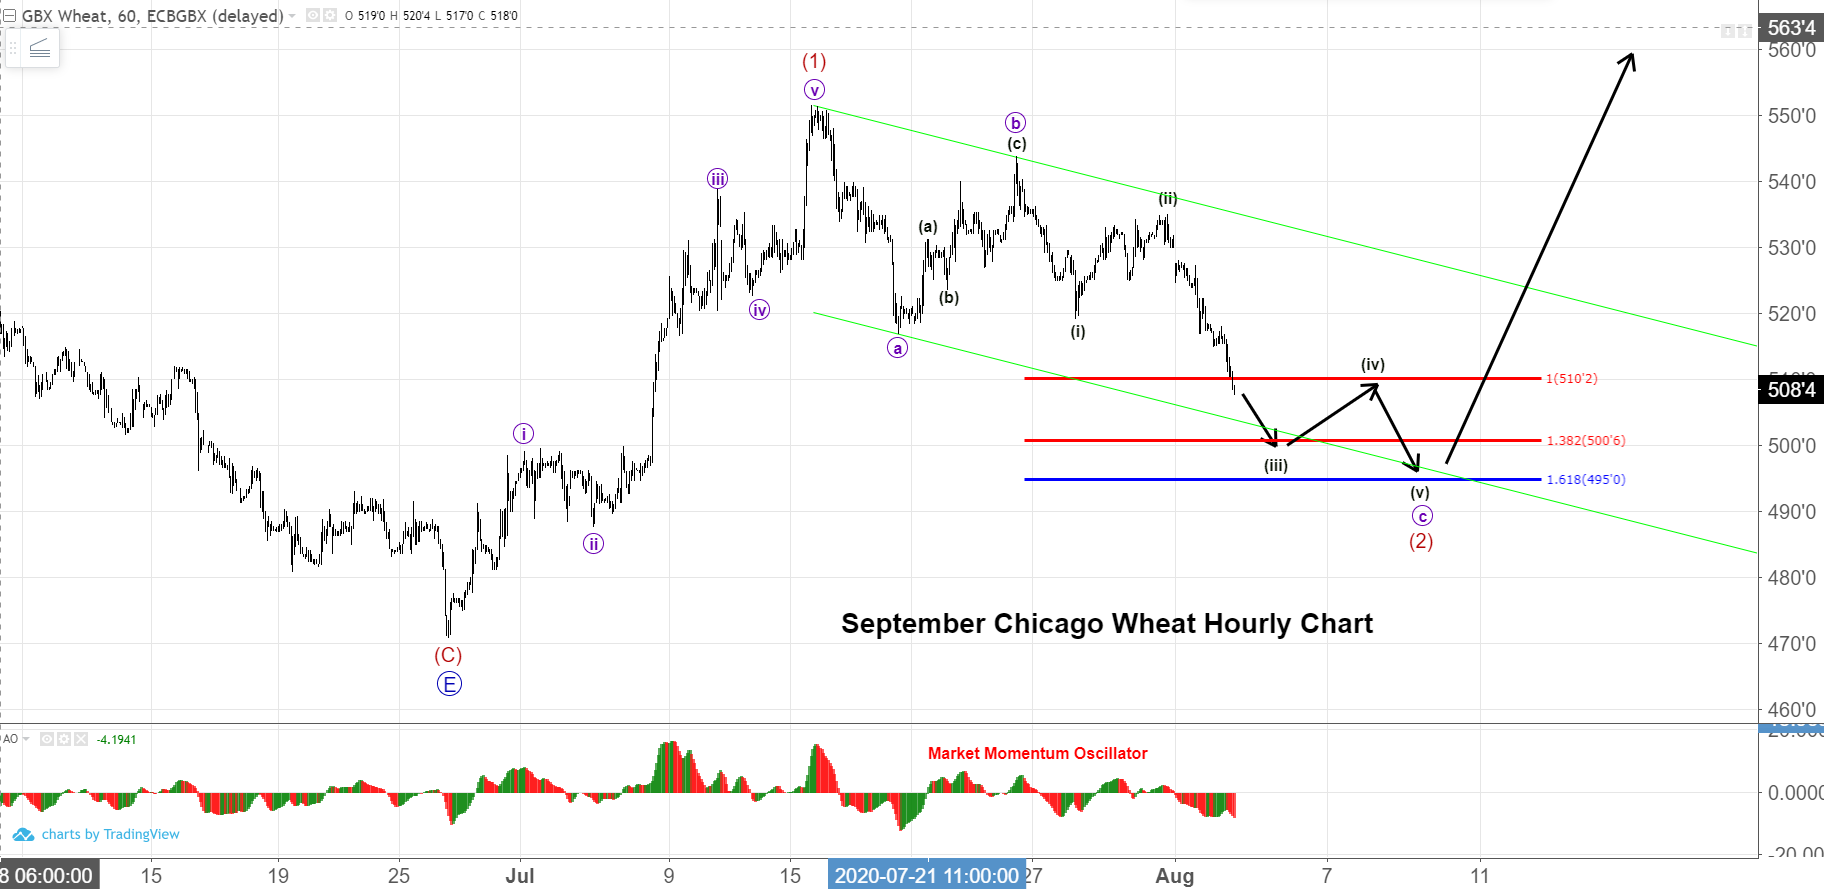 September Wheat Futures Hourly